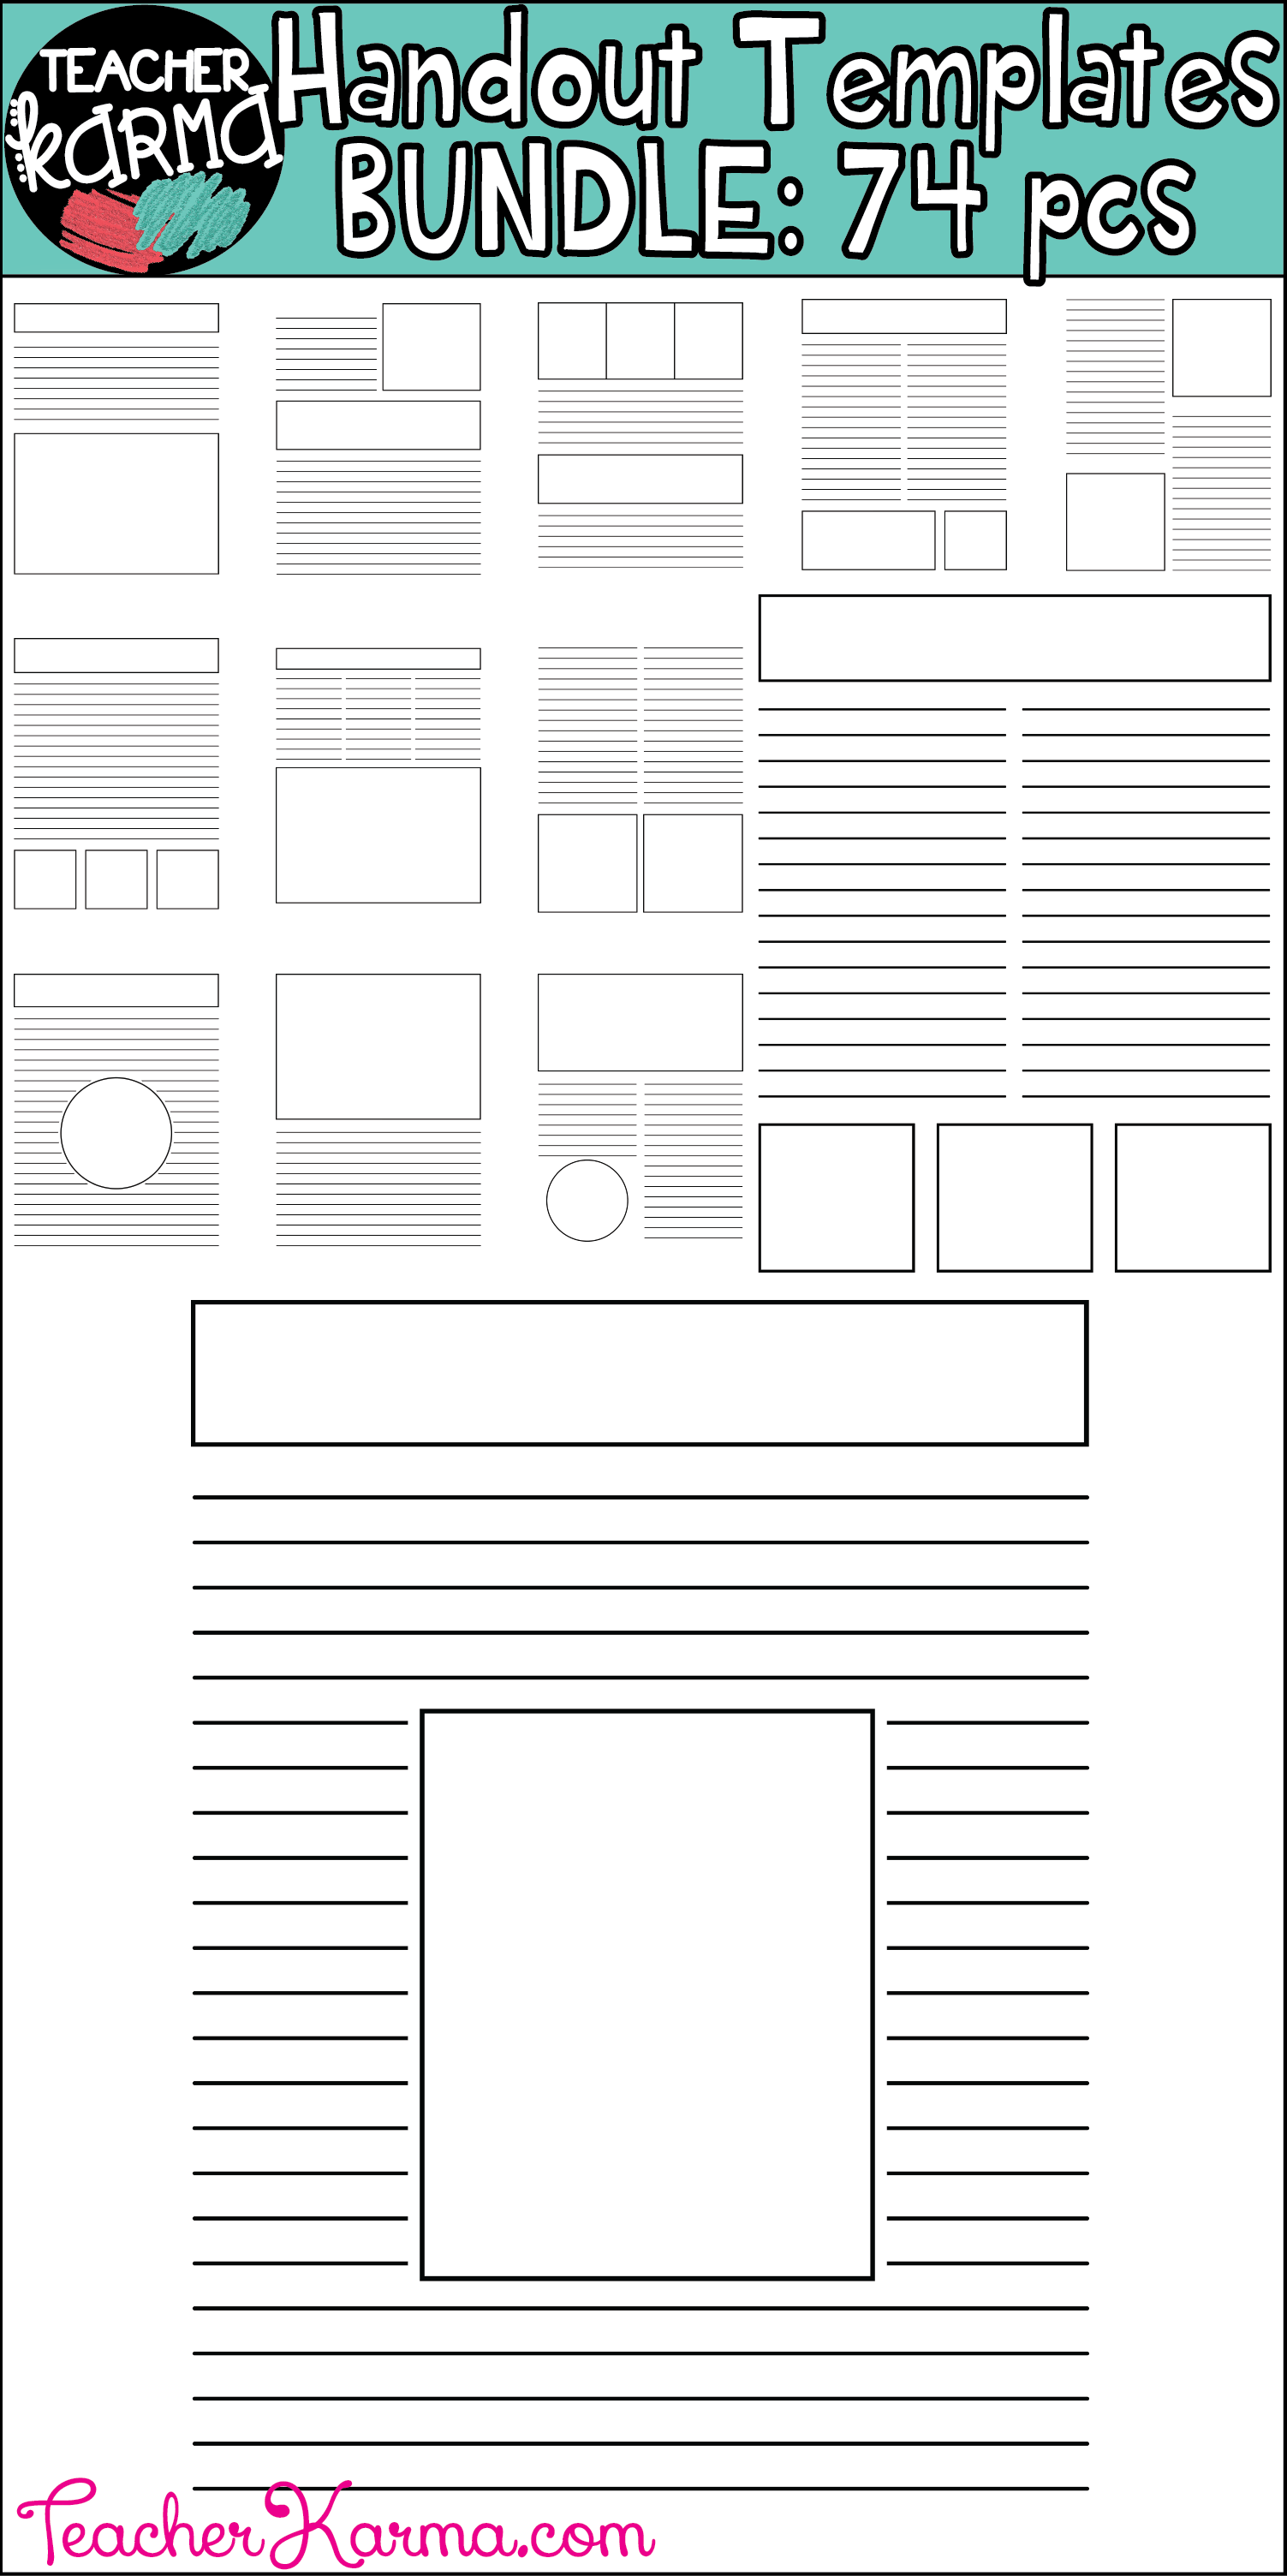 Worksheet Template Maker